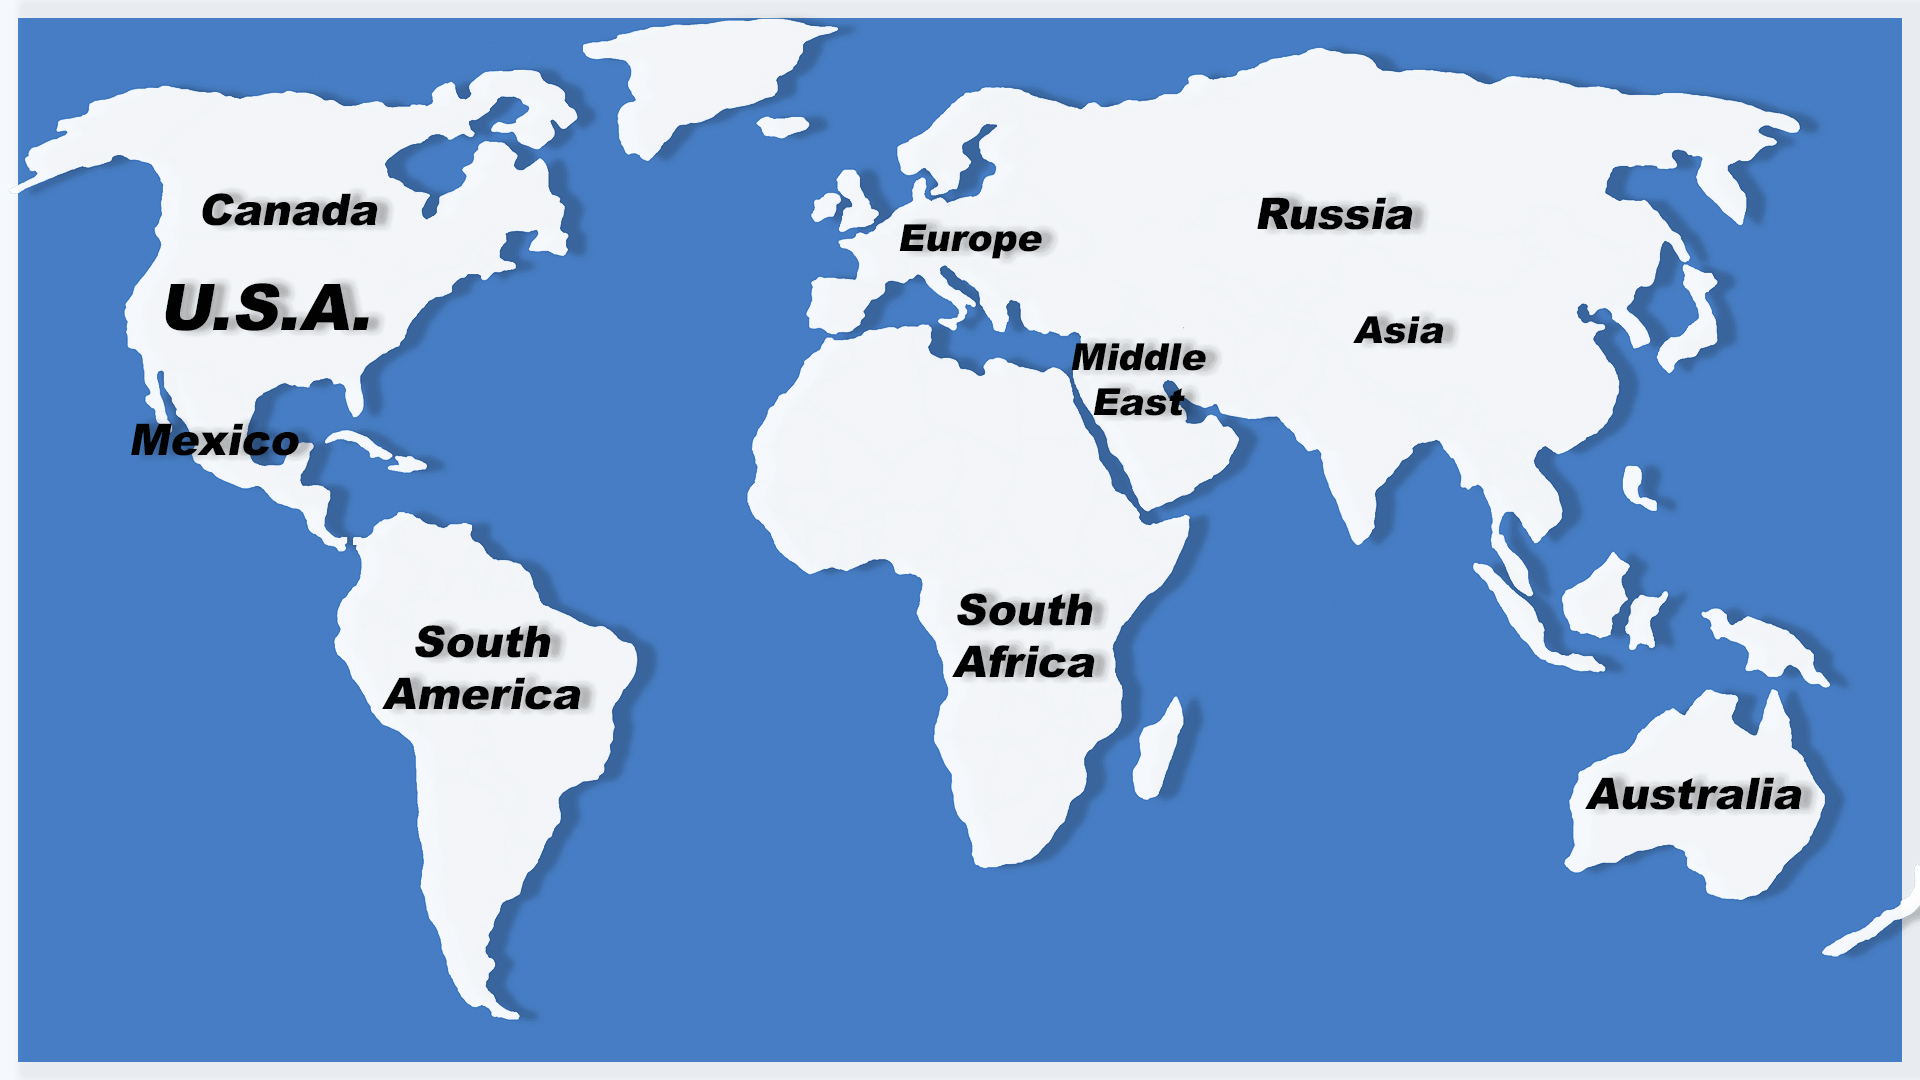 Map Of Europle, Middle East, Africa, Latin America, Canada Ranar Screen Printing Machinery Dealer Network